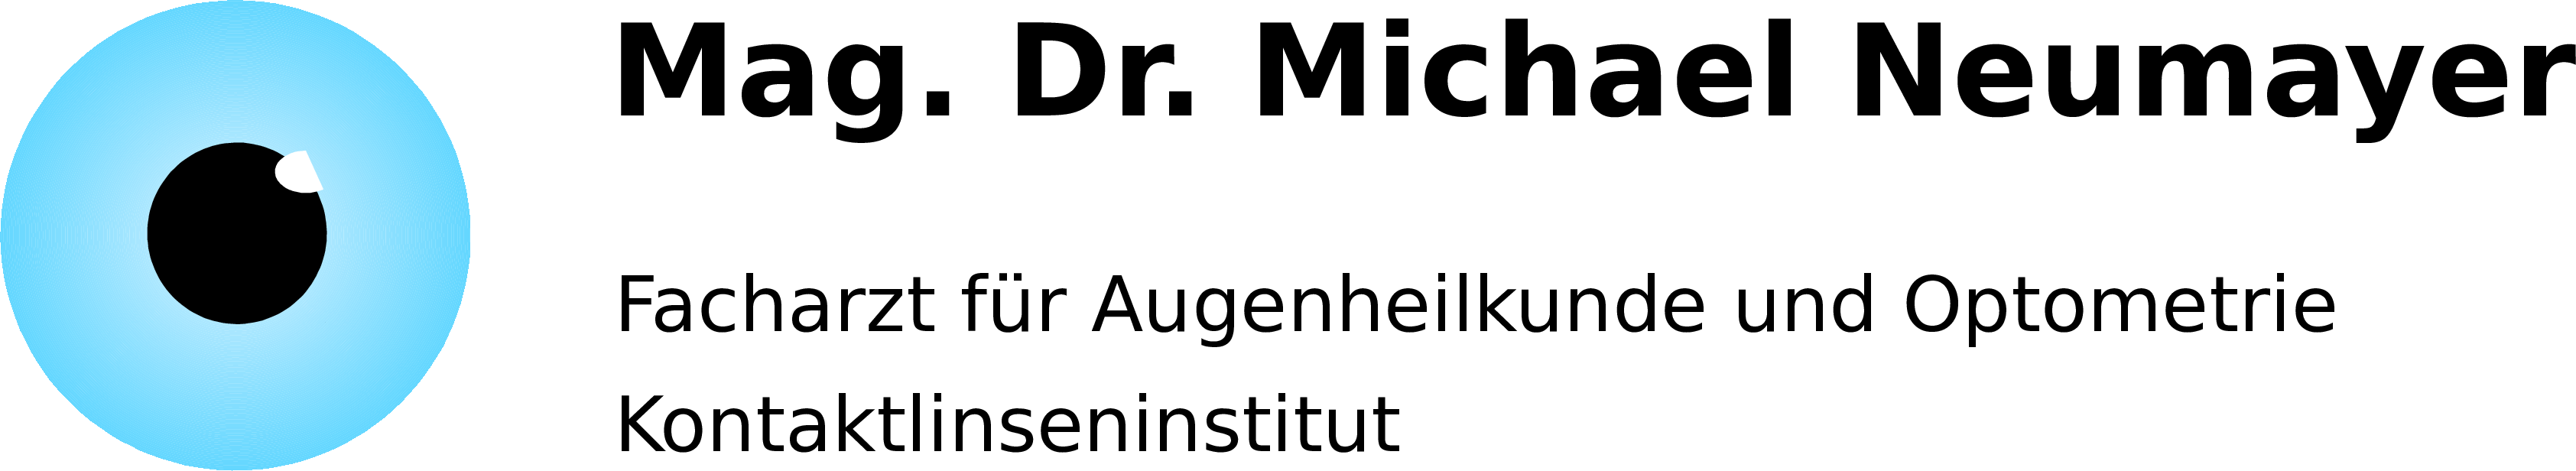 Mag. Dr. Michael Neumayer